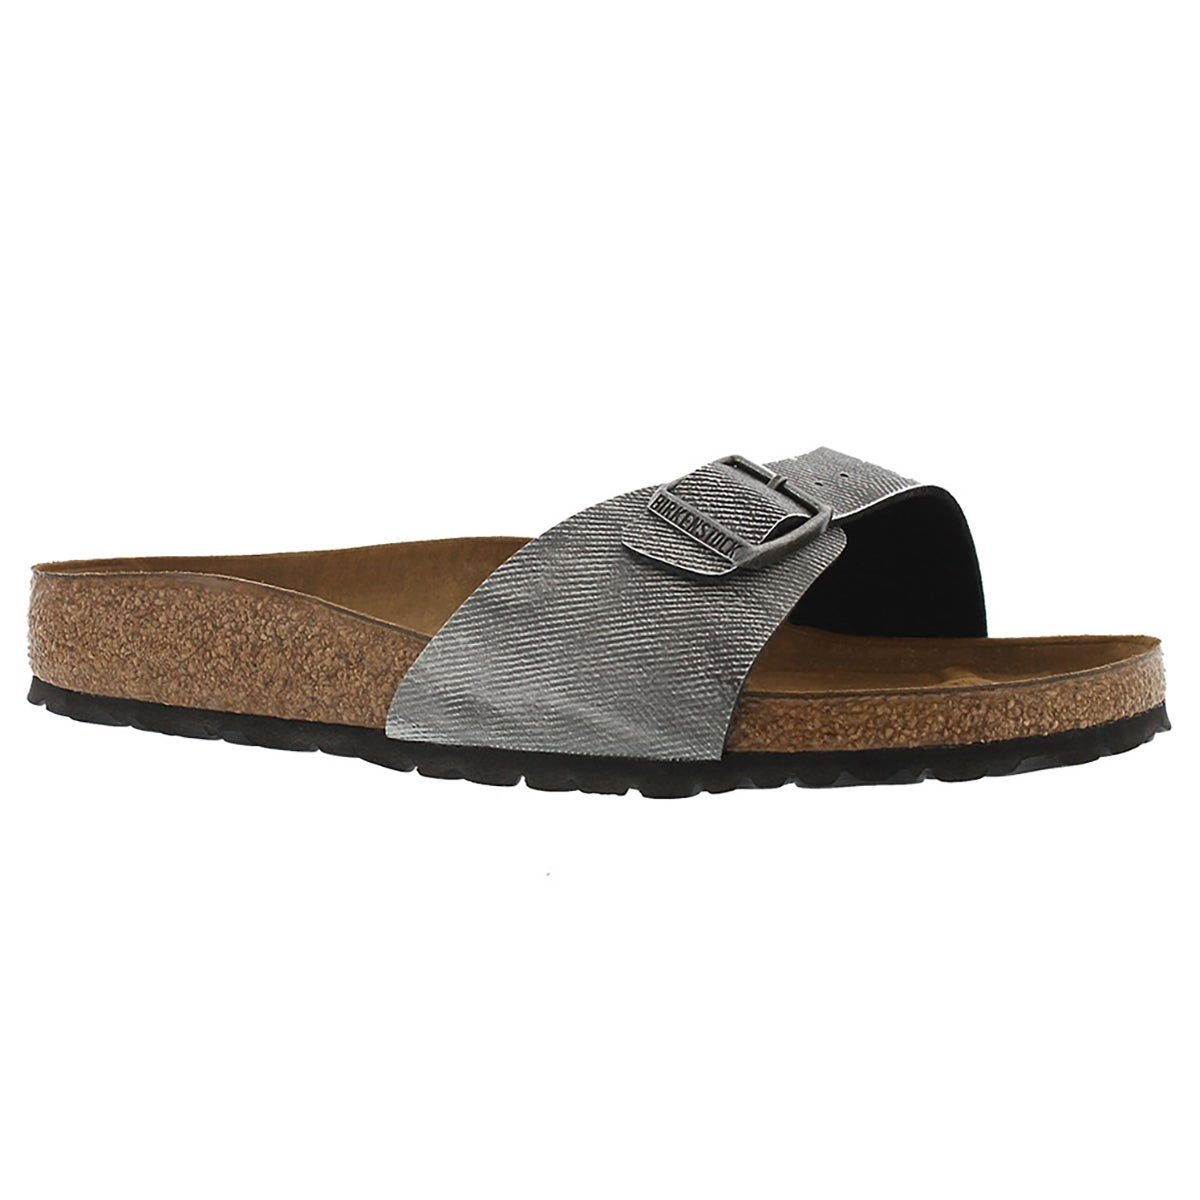 Women's MADRID grey jeans BF sandals- NARROW